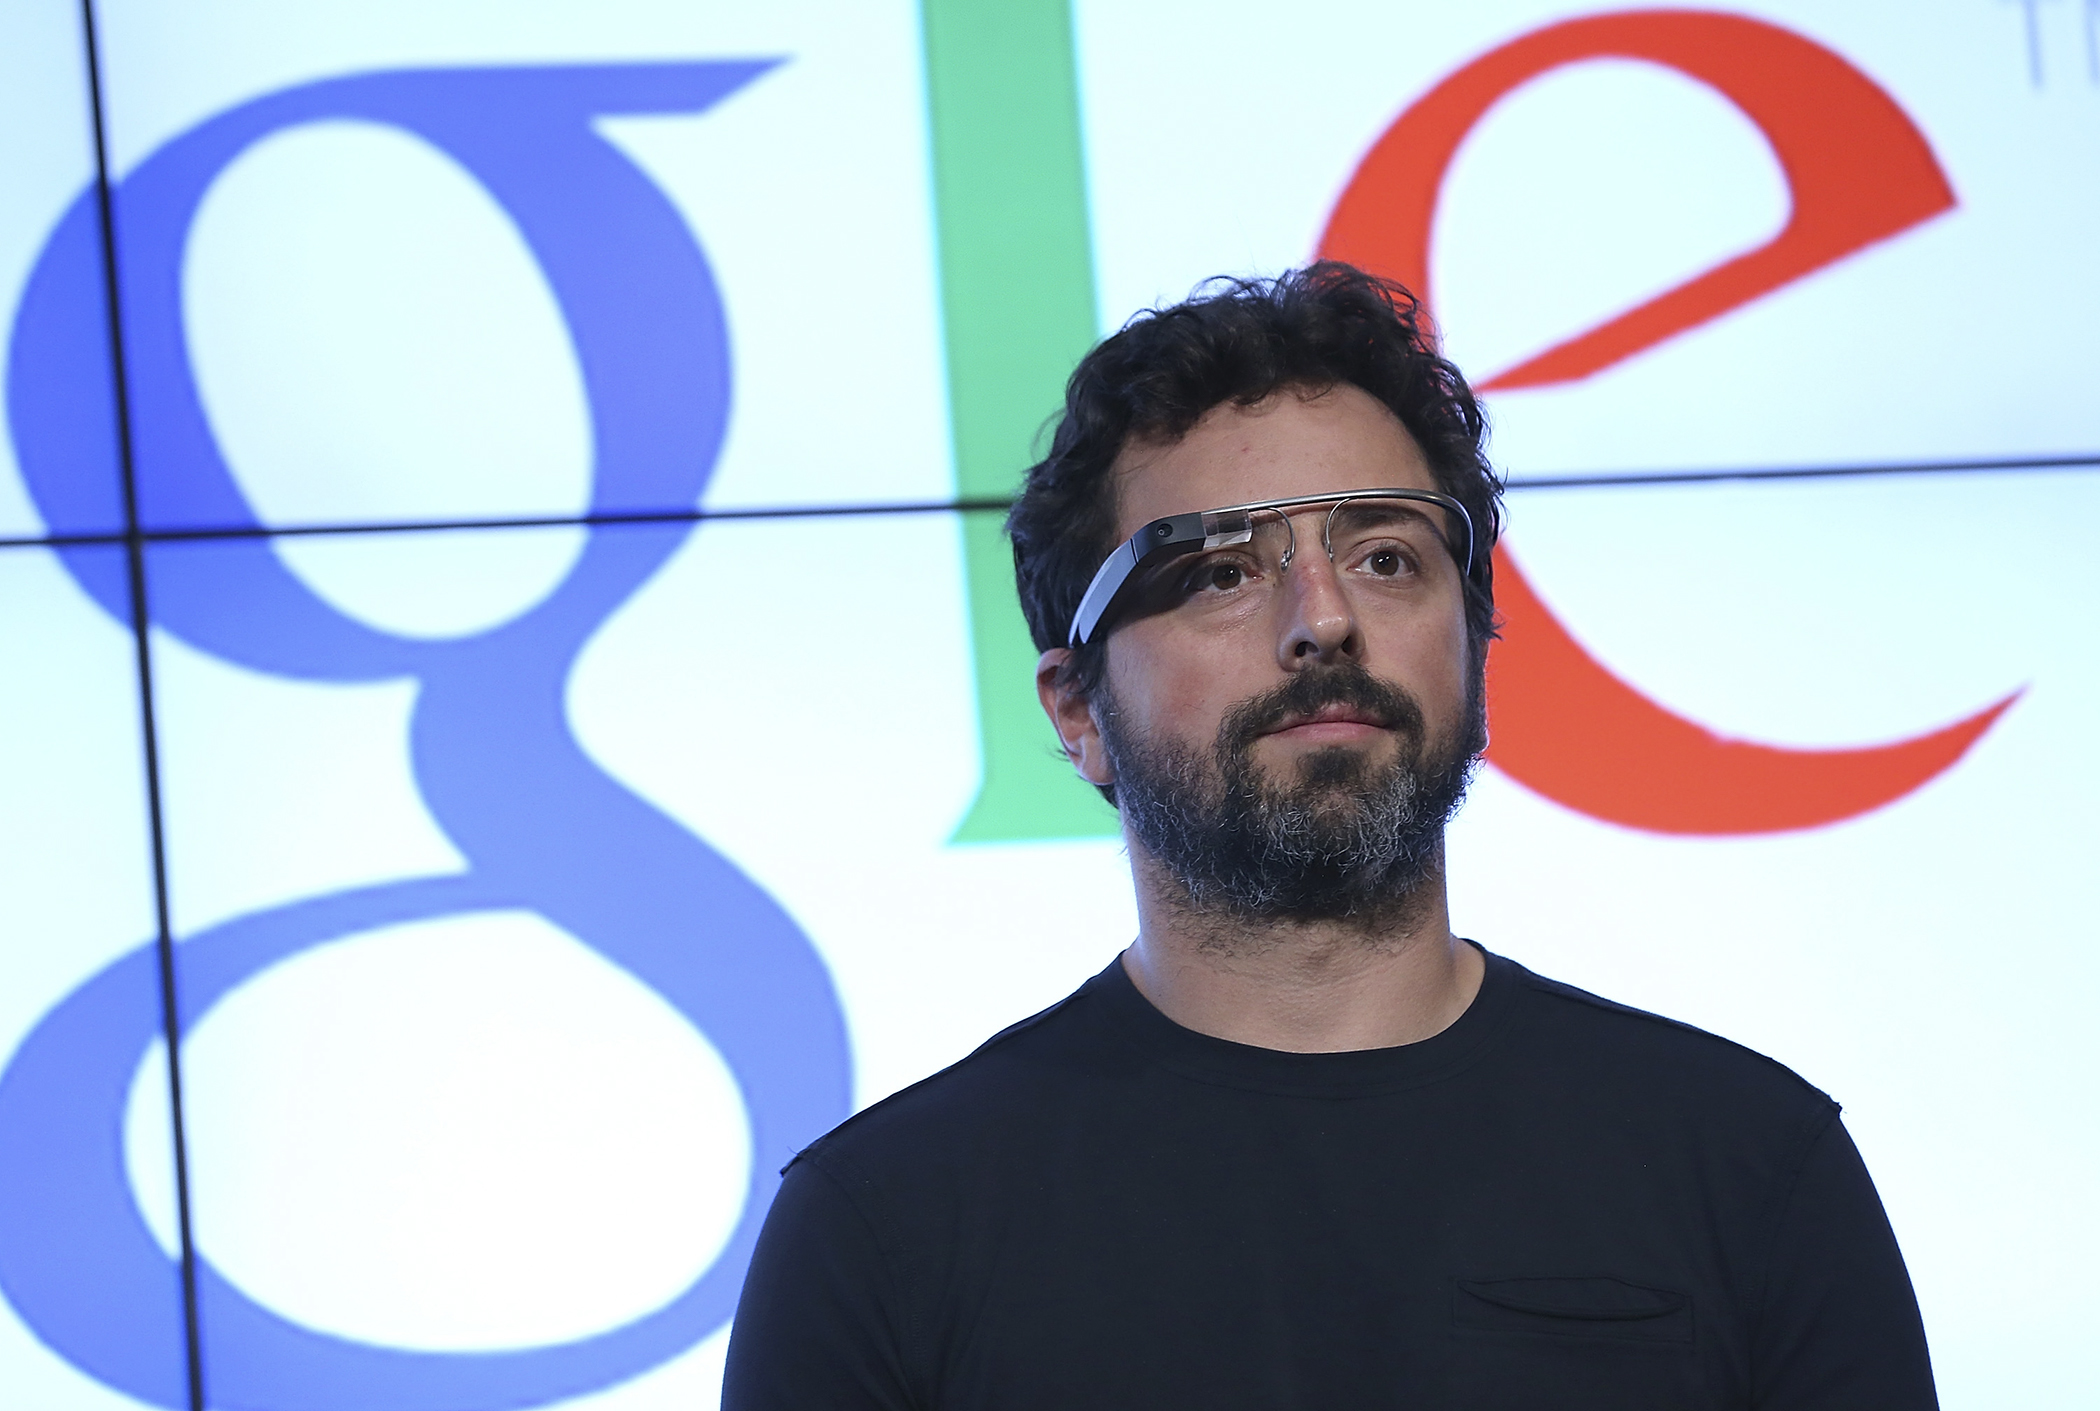 Google co-founder Sergey Brin looks on during a news conference at Google headquarters on September 25, 2012 in Mountain View, California.